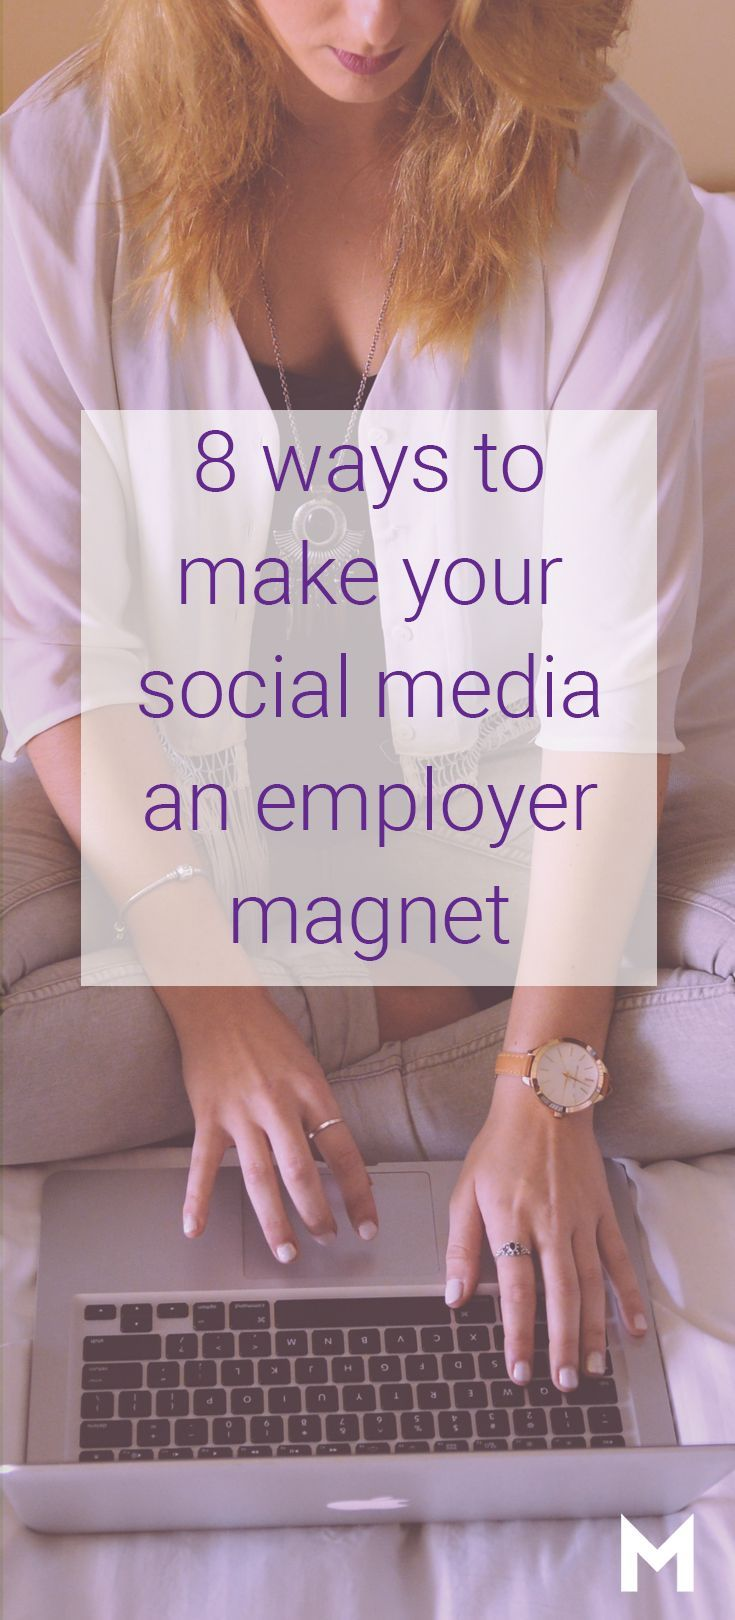 8 ways to make your social media